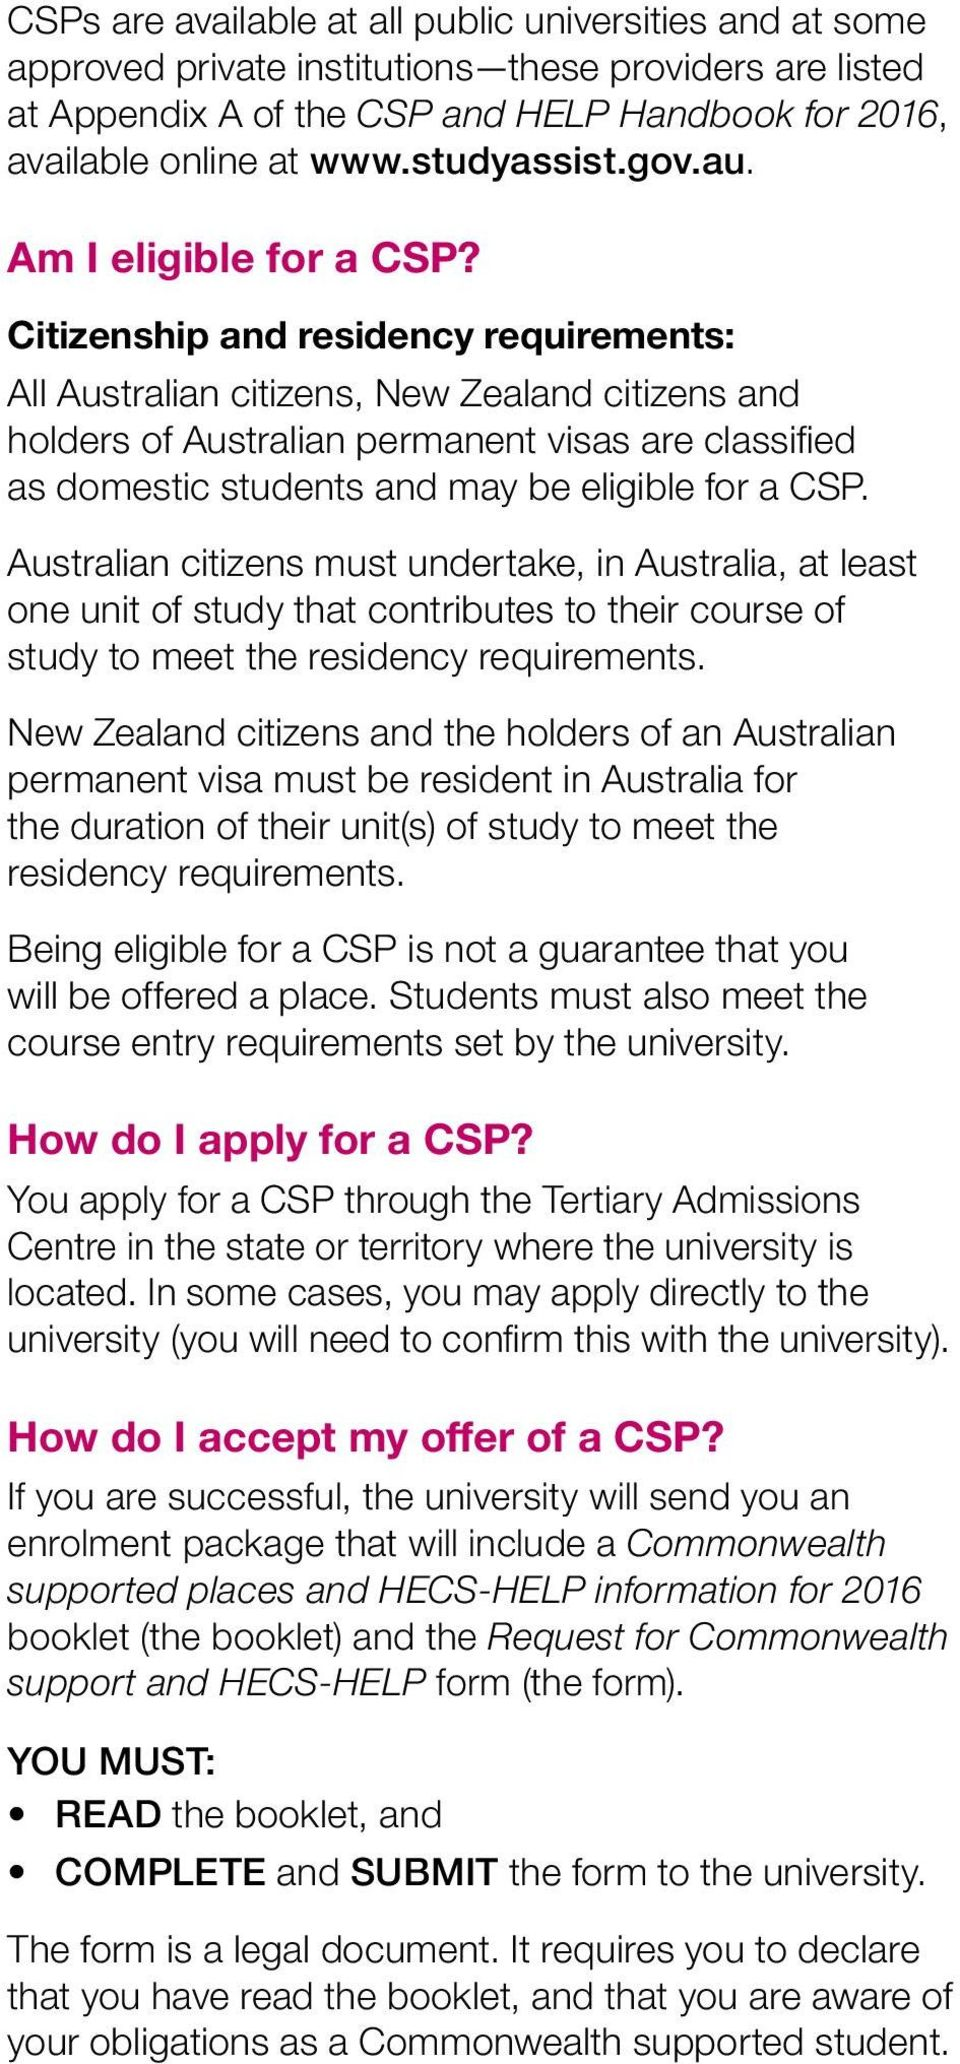 Citizenship and residency requirements: All Australian citizens, New Zealand citizens and holders of Australian permanent visas are classified as domestic students and may be eligible for a CSP.